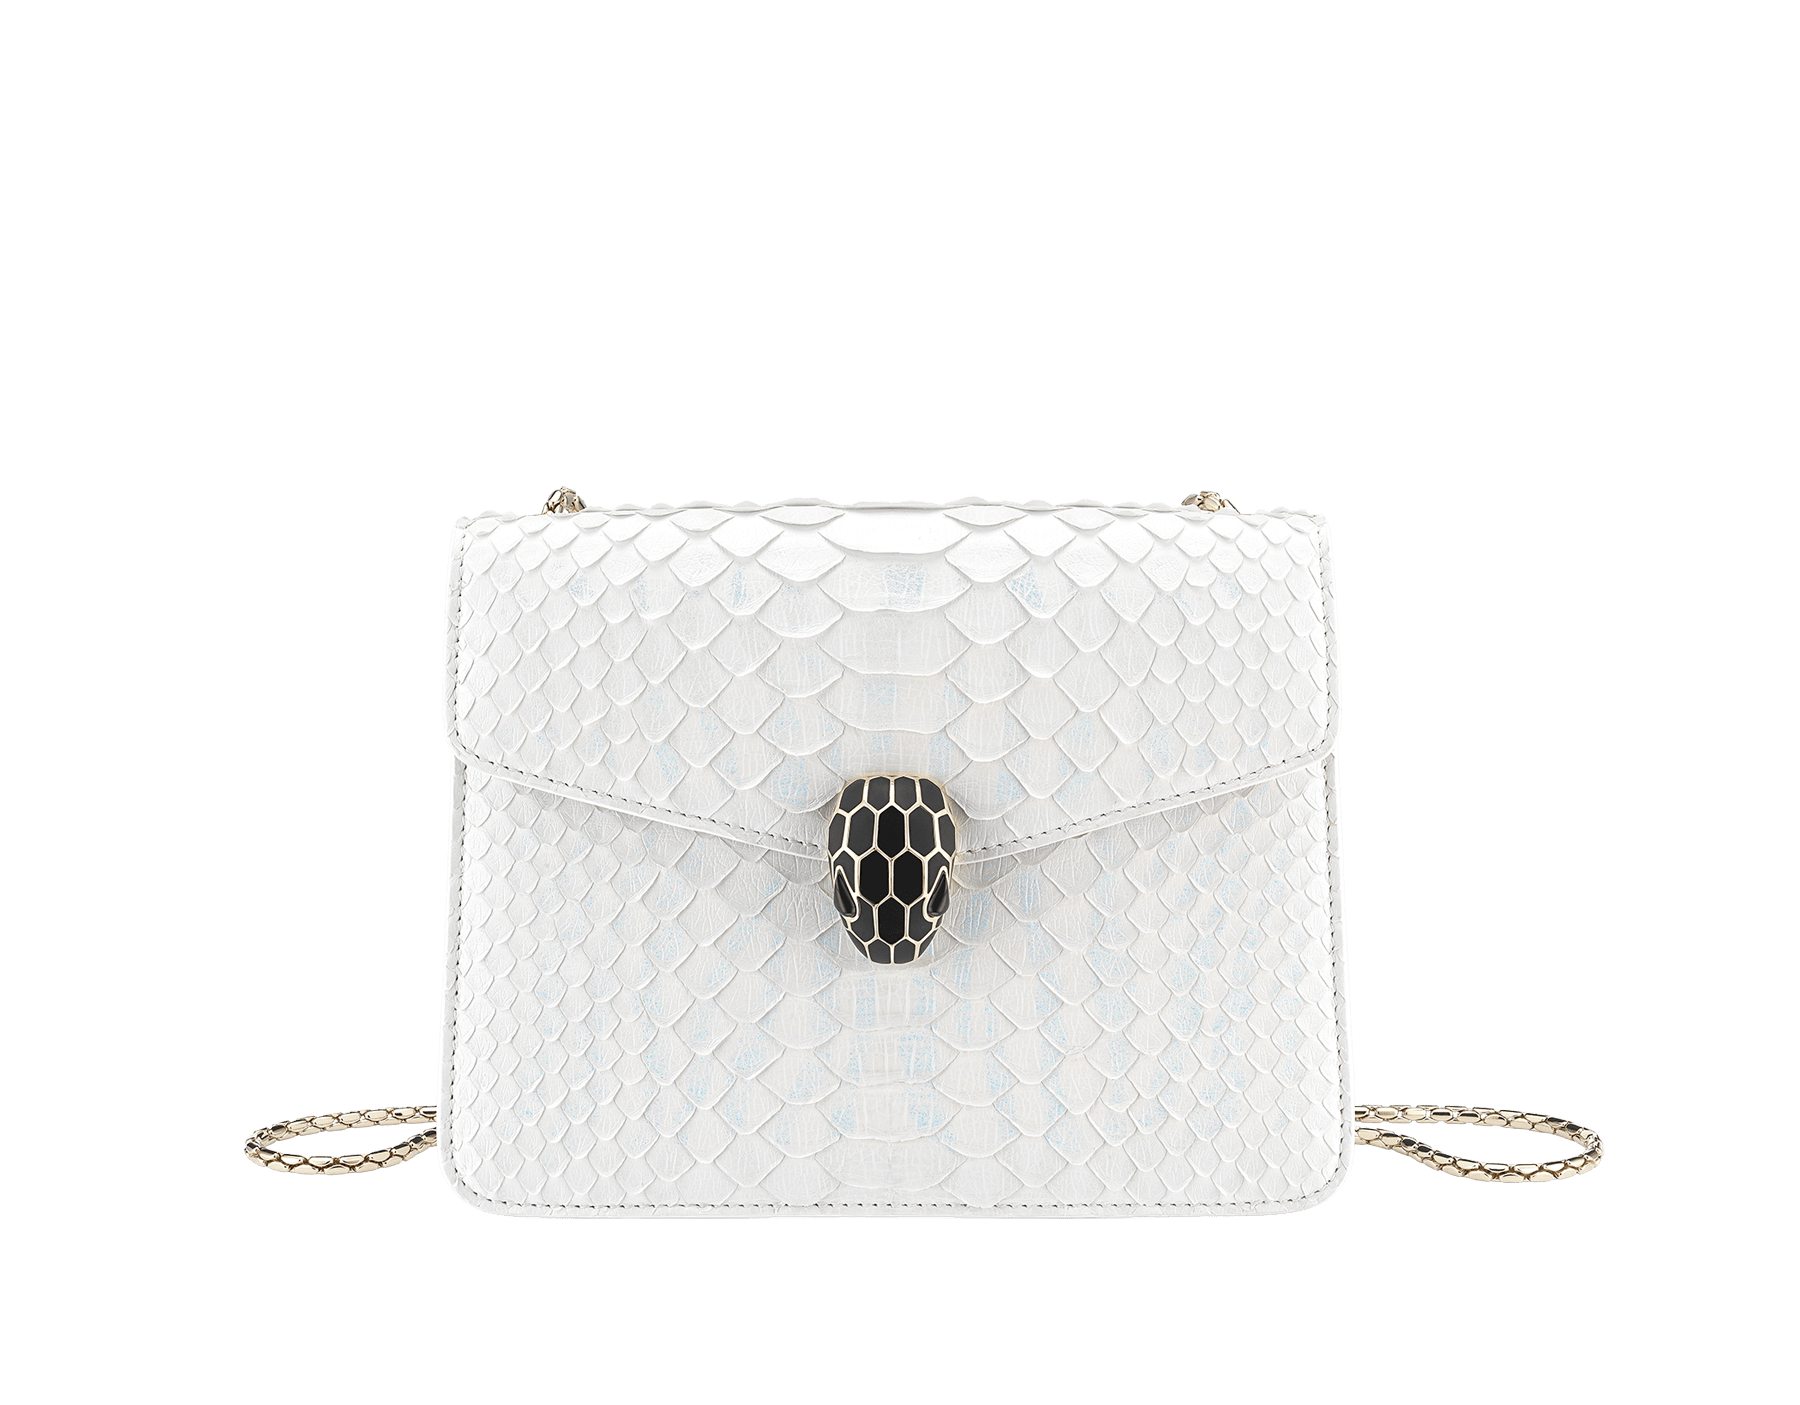 """Serpenti Forever"" crossbody bag in white agate python skin with an iridescent finishing. Iconic snake head closure in light gold plated brass enriched with matte and shiny black enamel, and black onyx eyes. 289773 image 1"